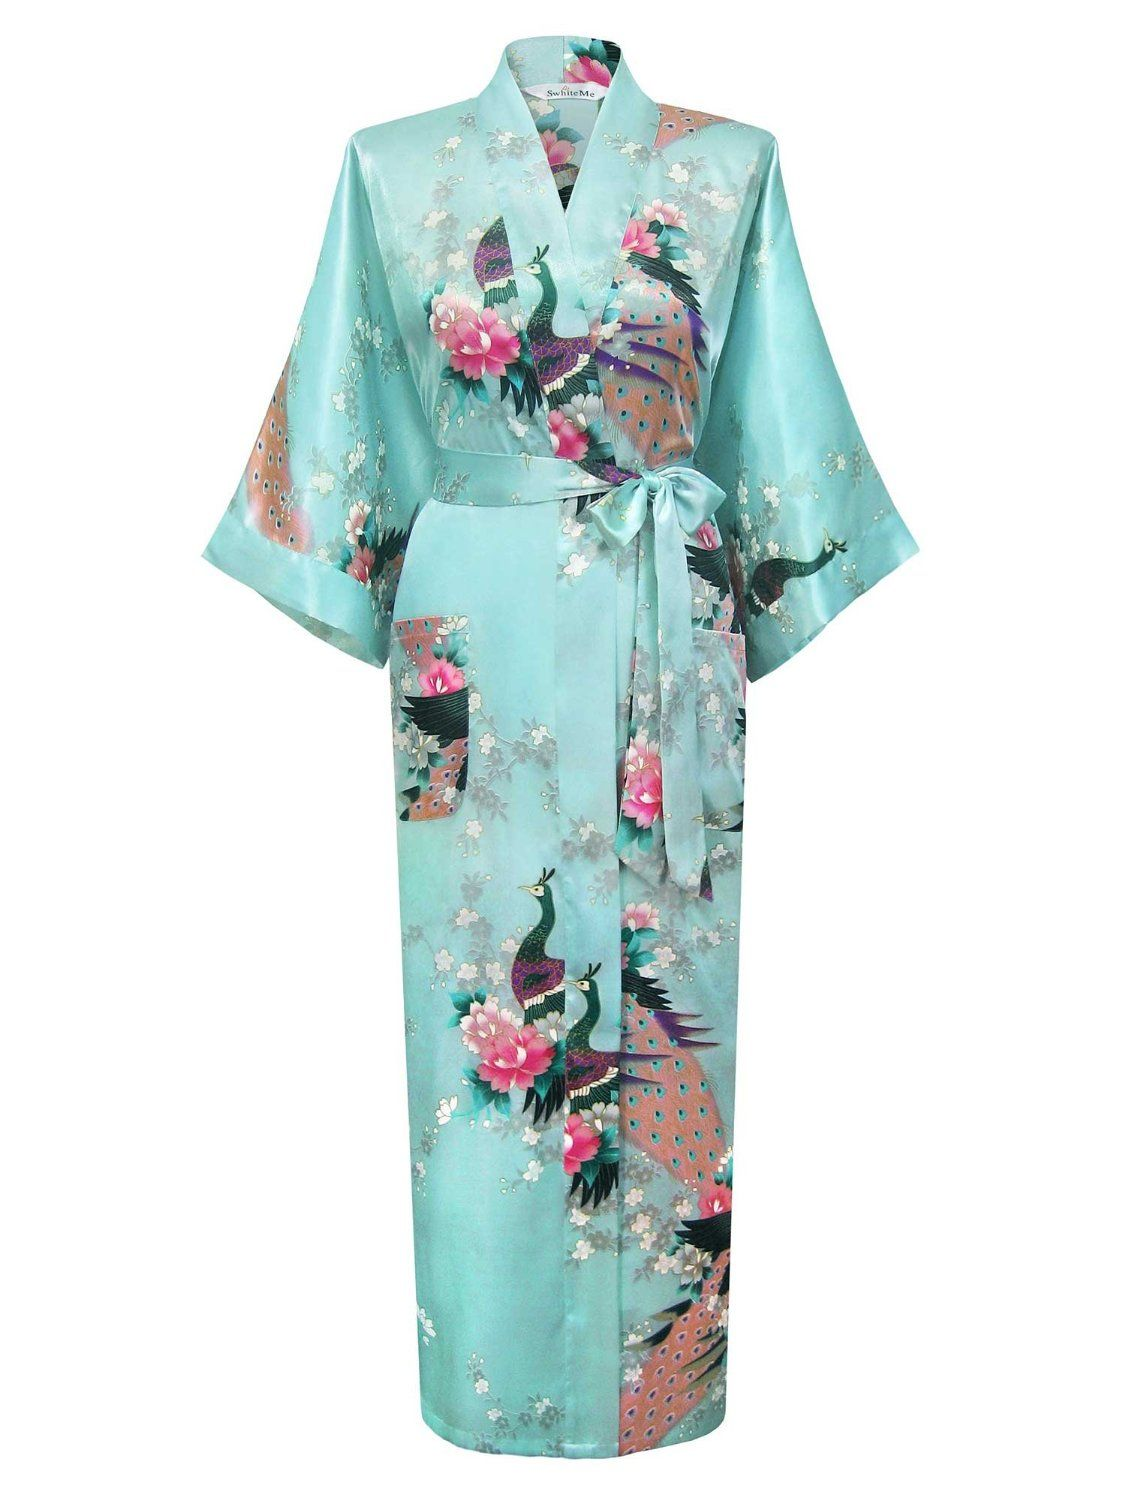 Swhiteme Women's Kimono Robe – Peacock & Blossom  ---  Price : $39.95   ----   Total Reviews : 70 -> http://girlwardrobe.com/?post_type=product&p=1419